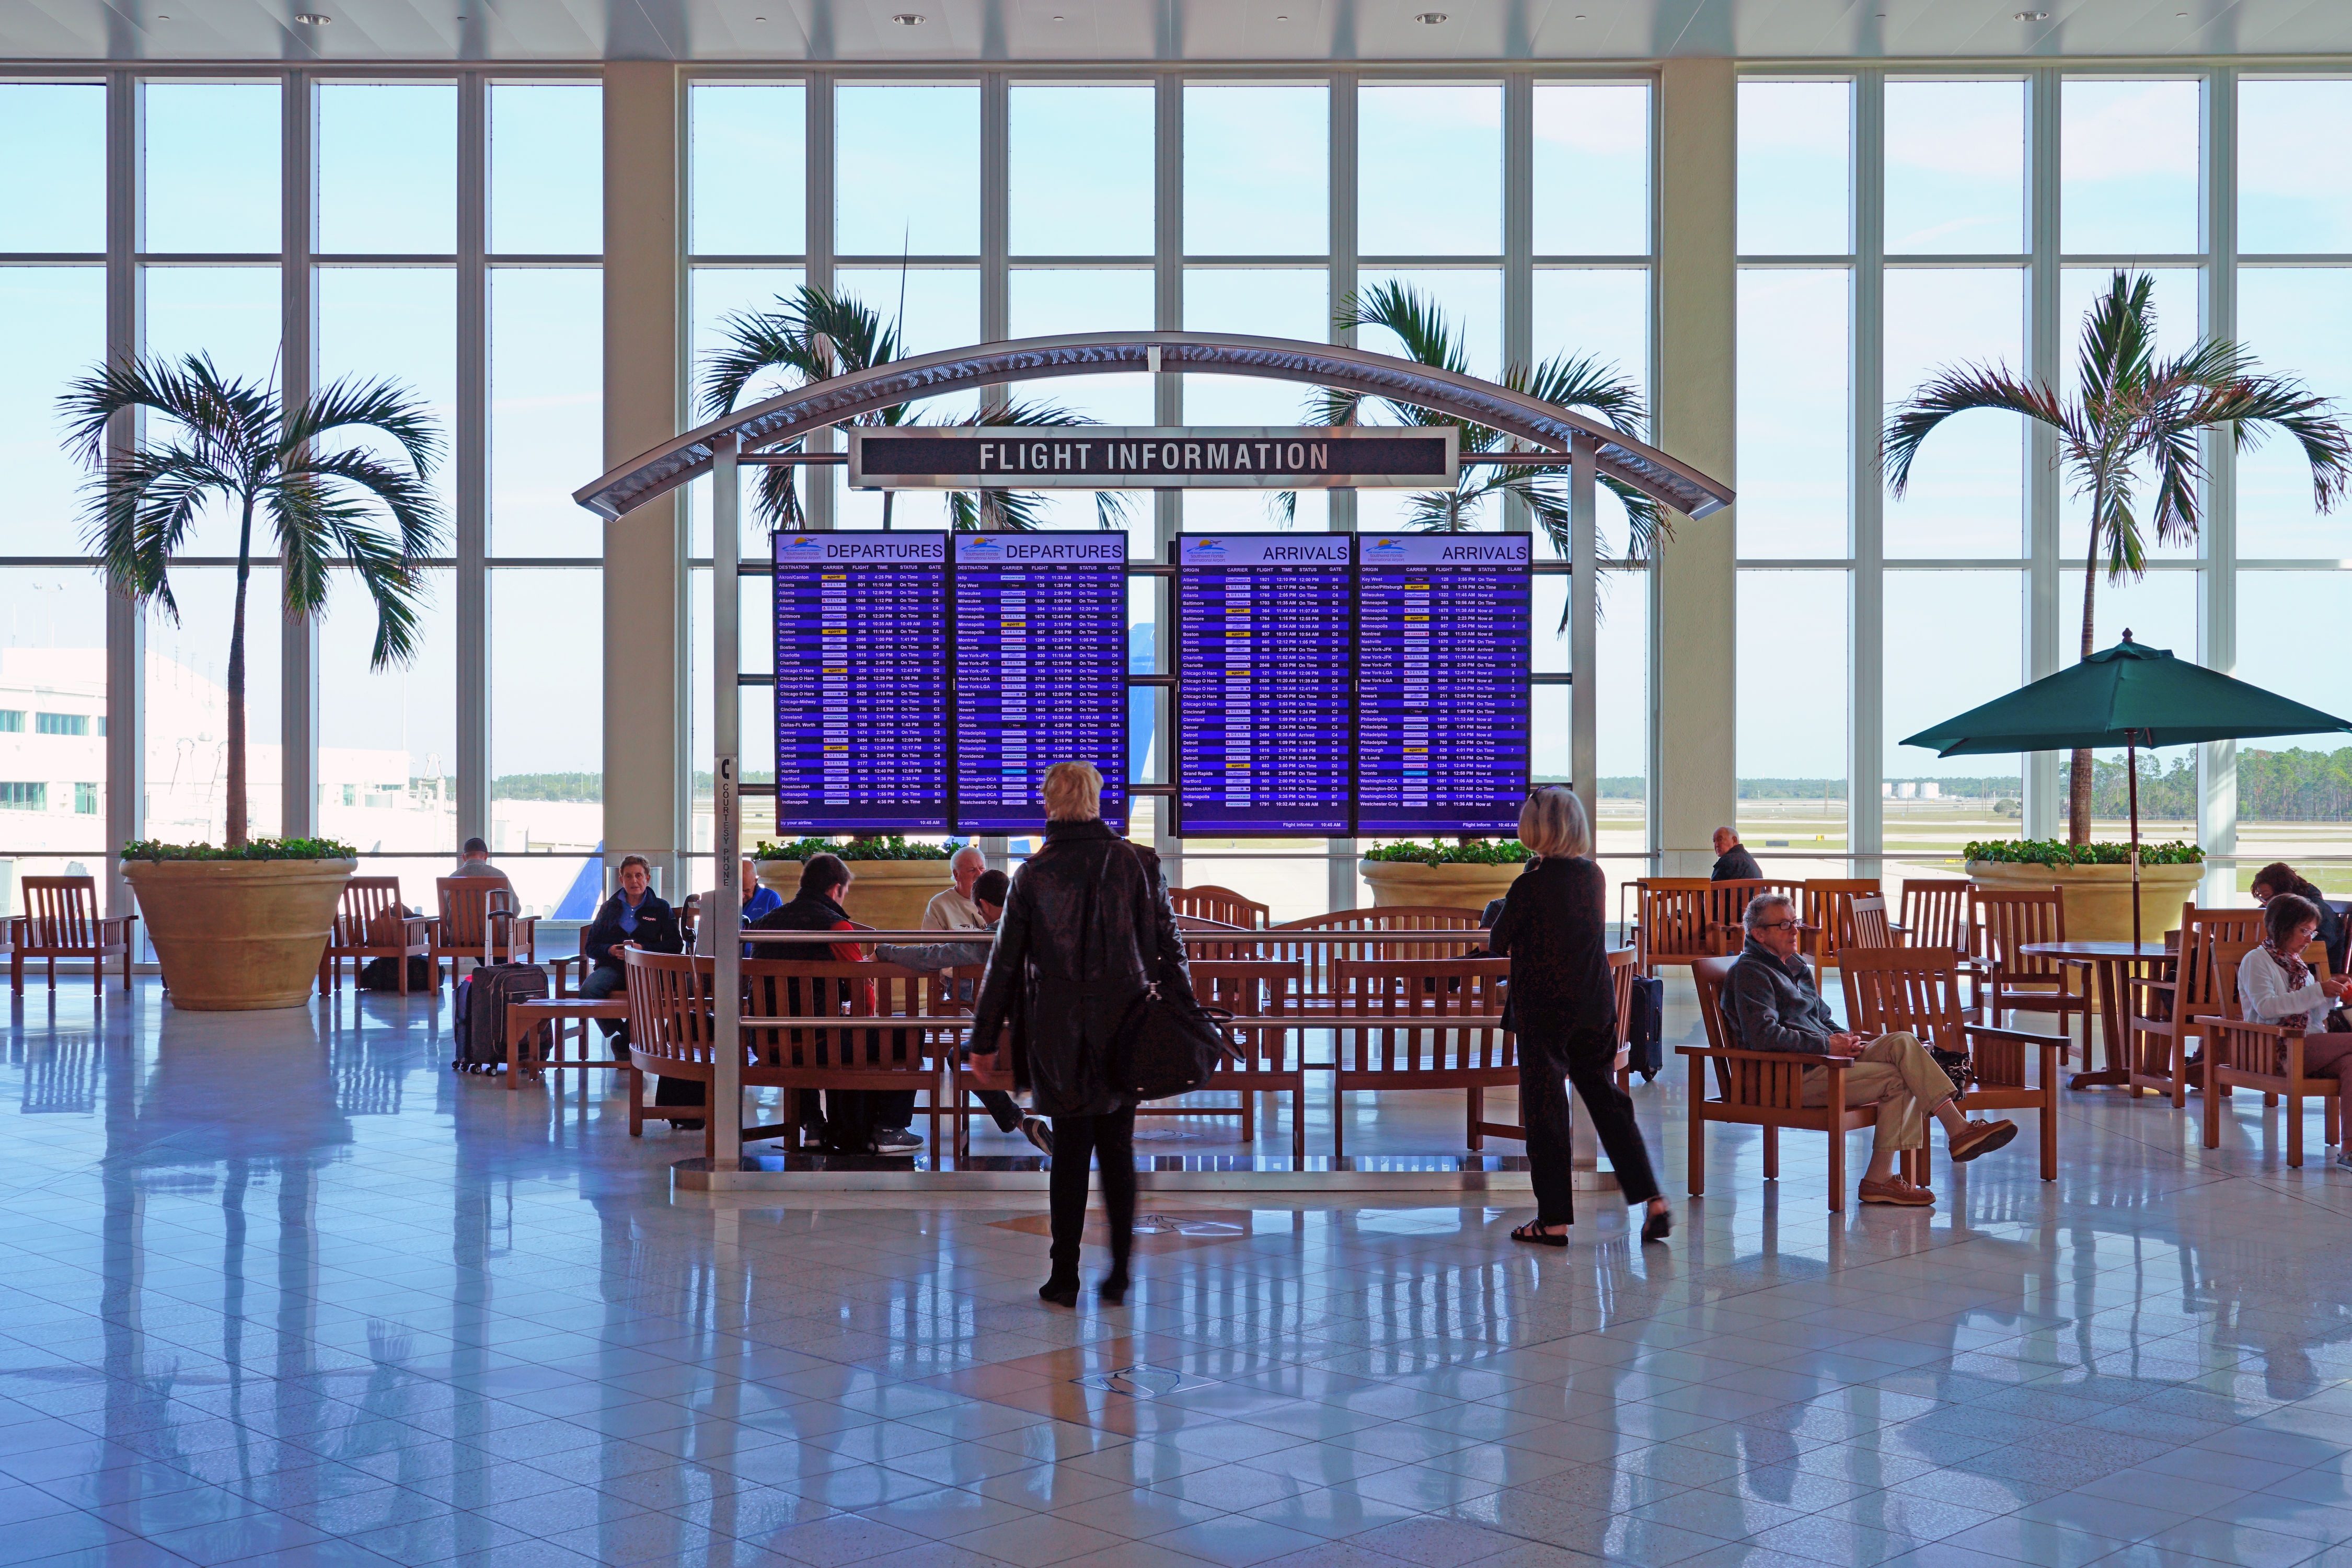 How Early Should You Get to the Airport? Here's What Travel Experts Say